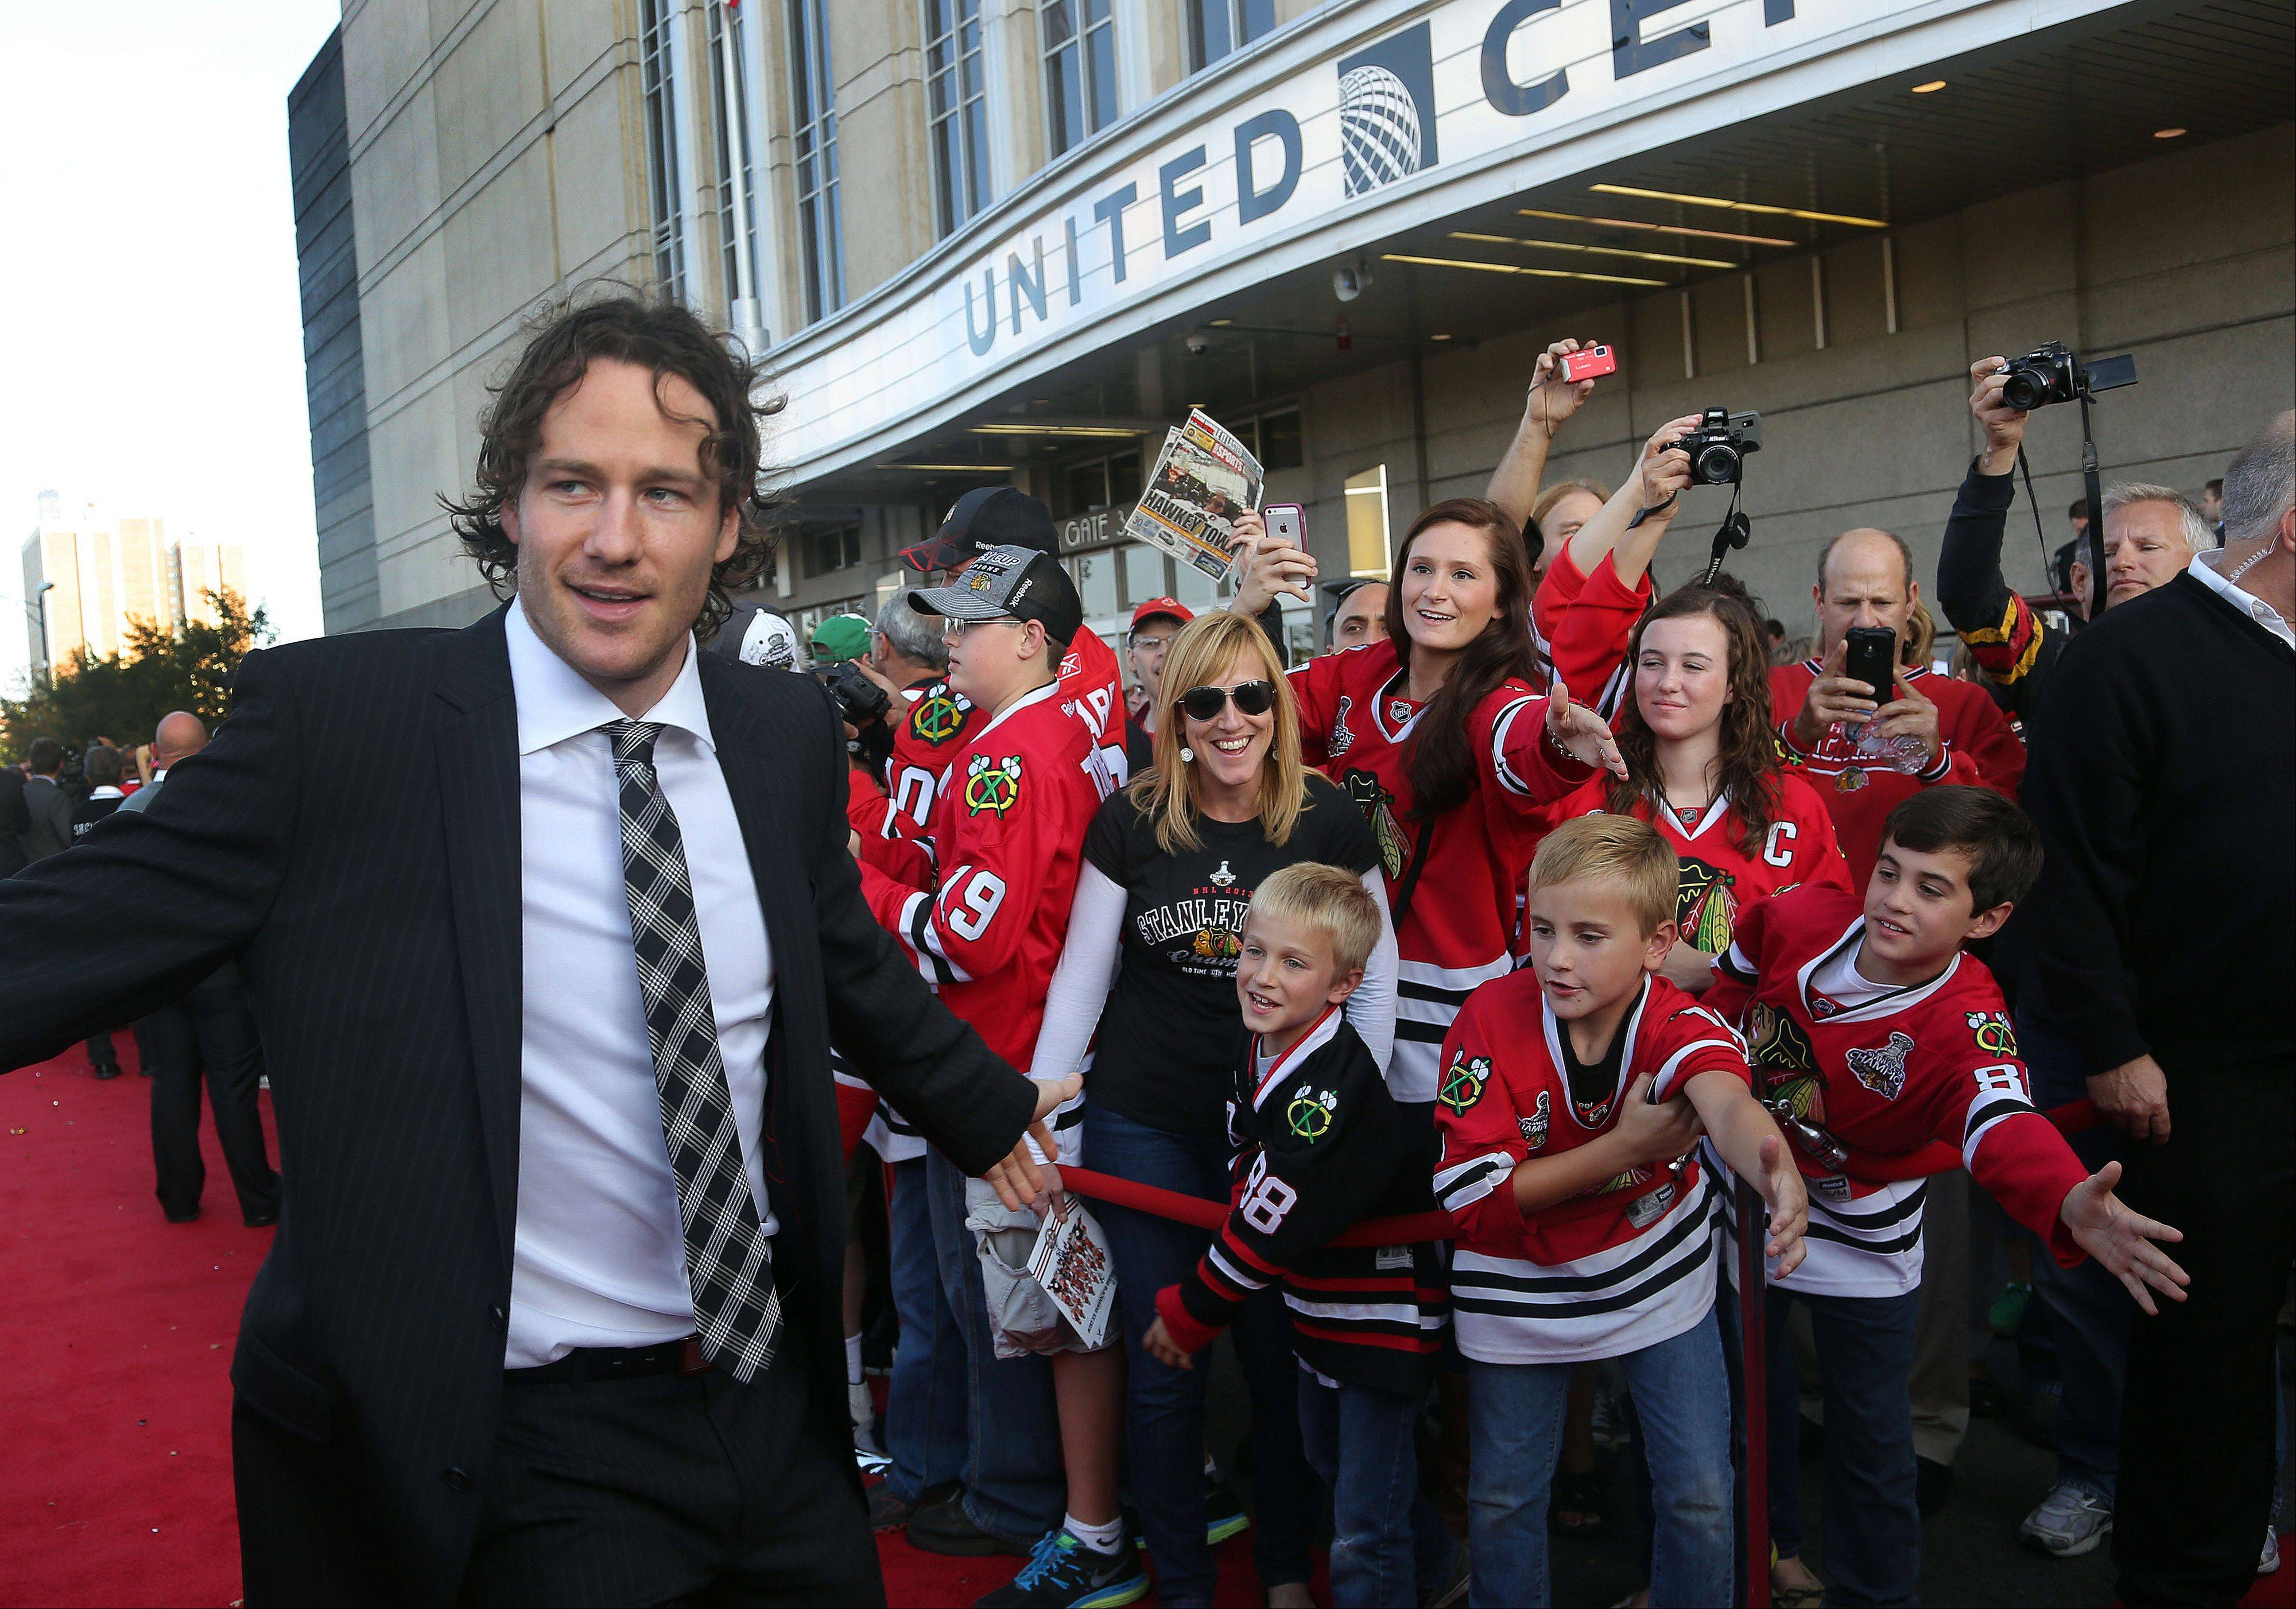 Chicago Blackhawks Duncan Keith high-fives fans.